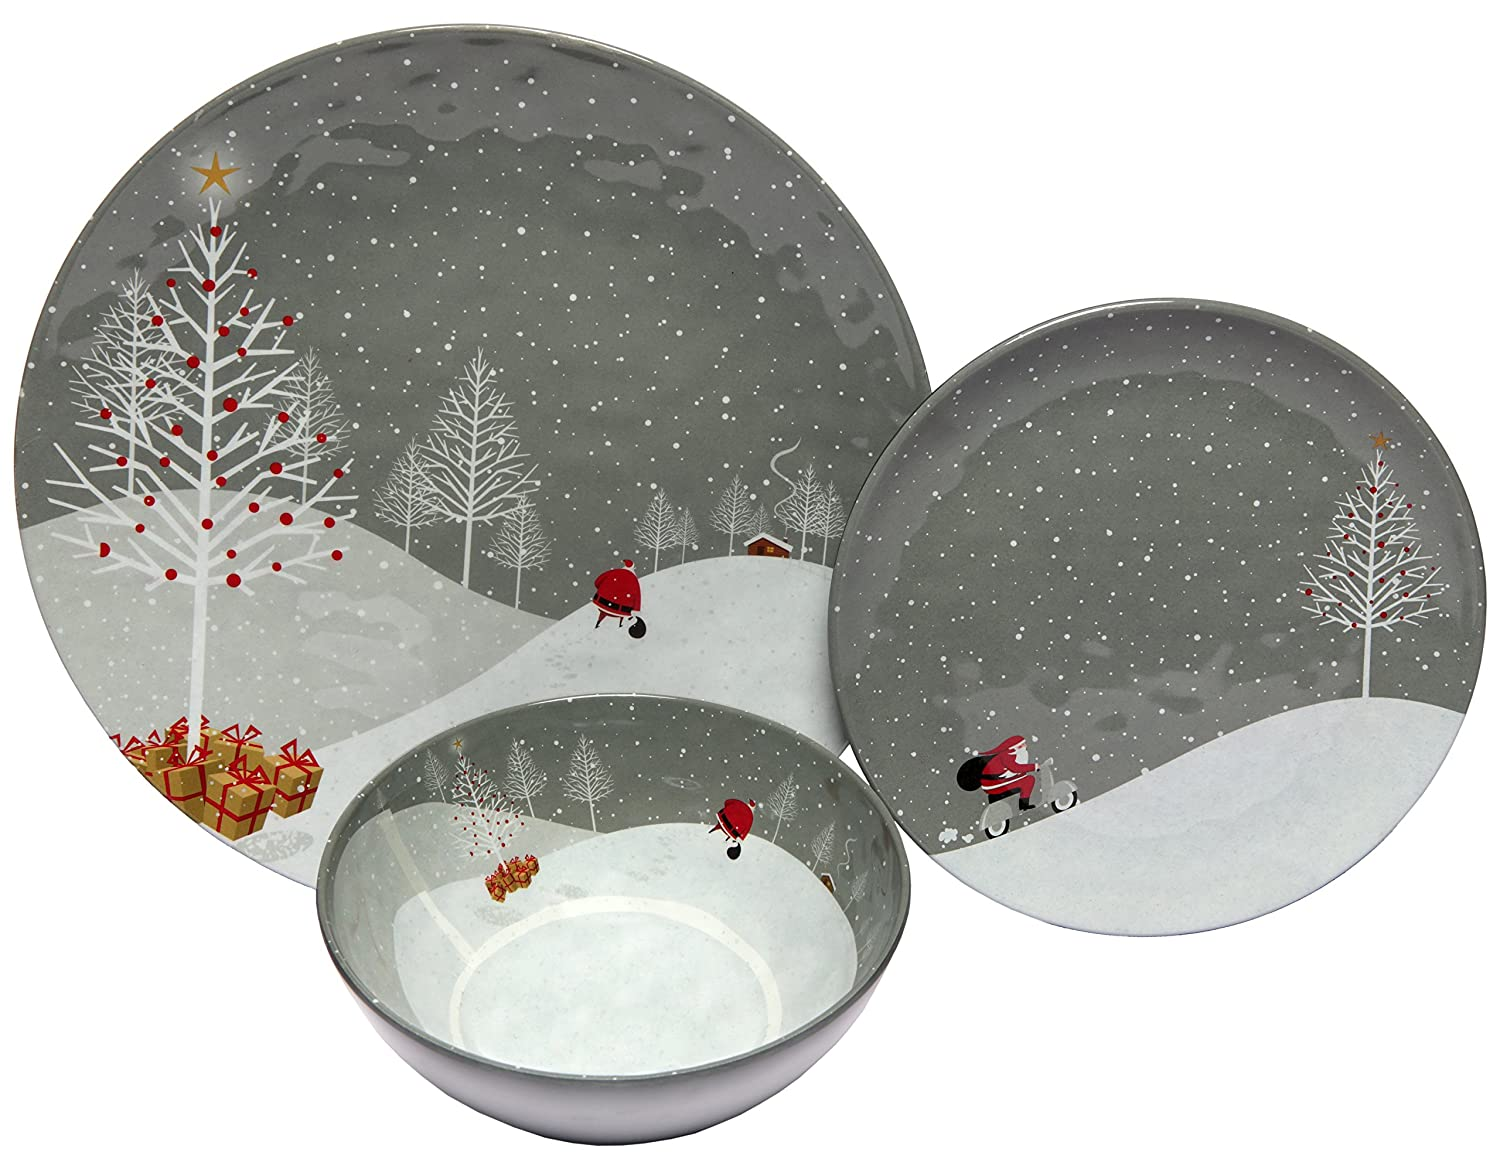 Melange 36-Piece 100% Melamine Dinnerware Set (Santa Comes Home Collection) | Shatter-Proof and Chip-Resistant Melamine Plates and Bowls | Dinner Plate, Salad Plate & Soup Bowl (12 Each) Ruby Compass Melamine 612409793119